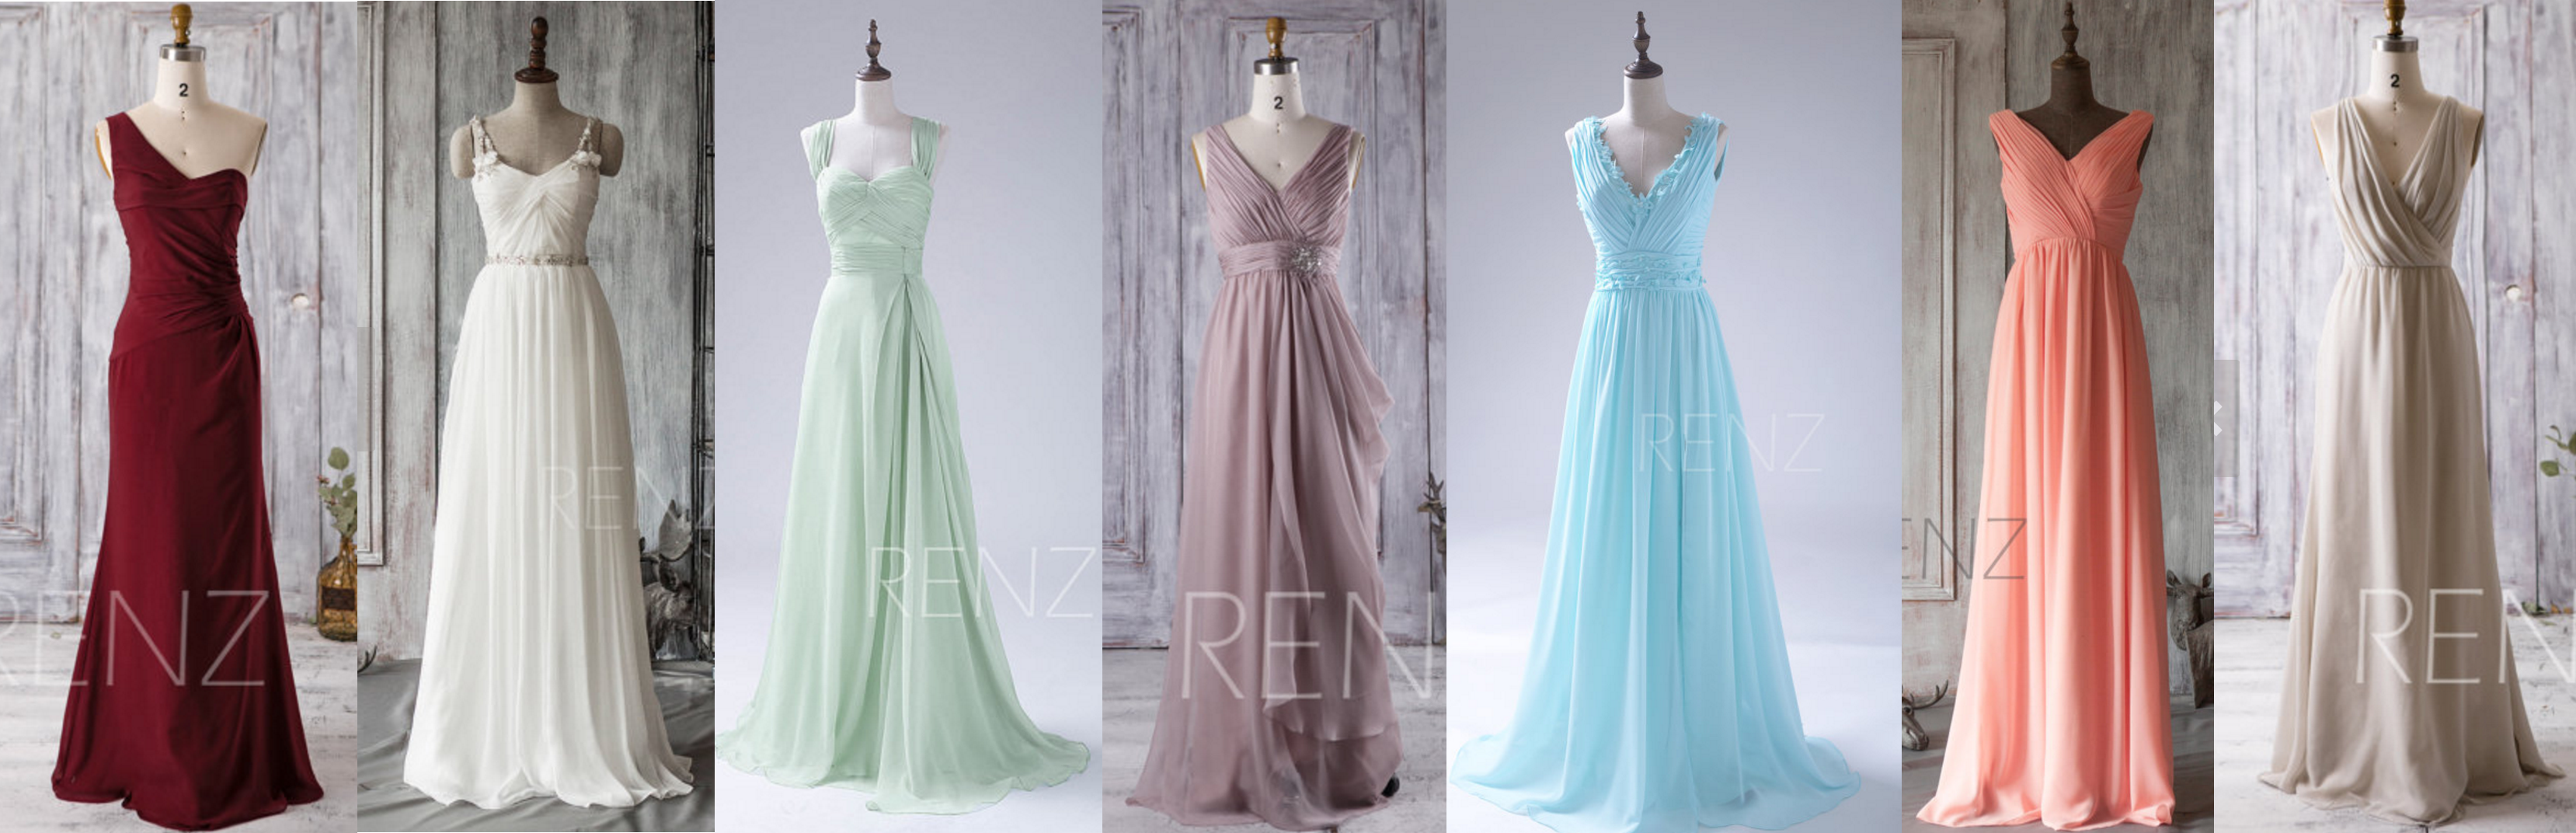 Bridesmaid Dresses Swatches